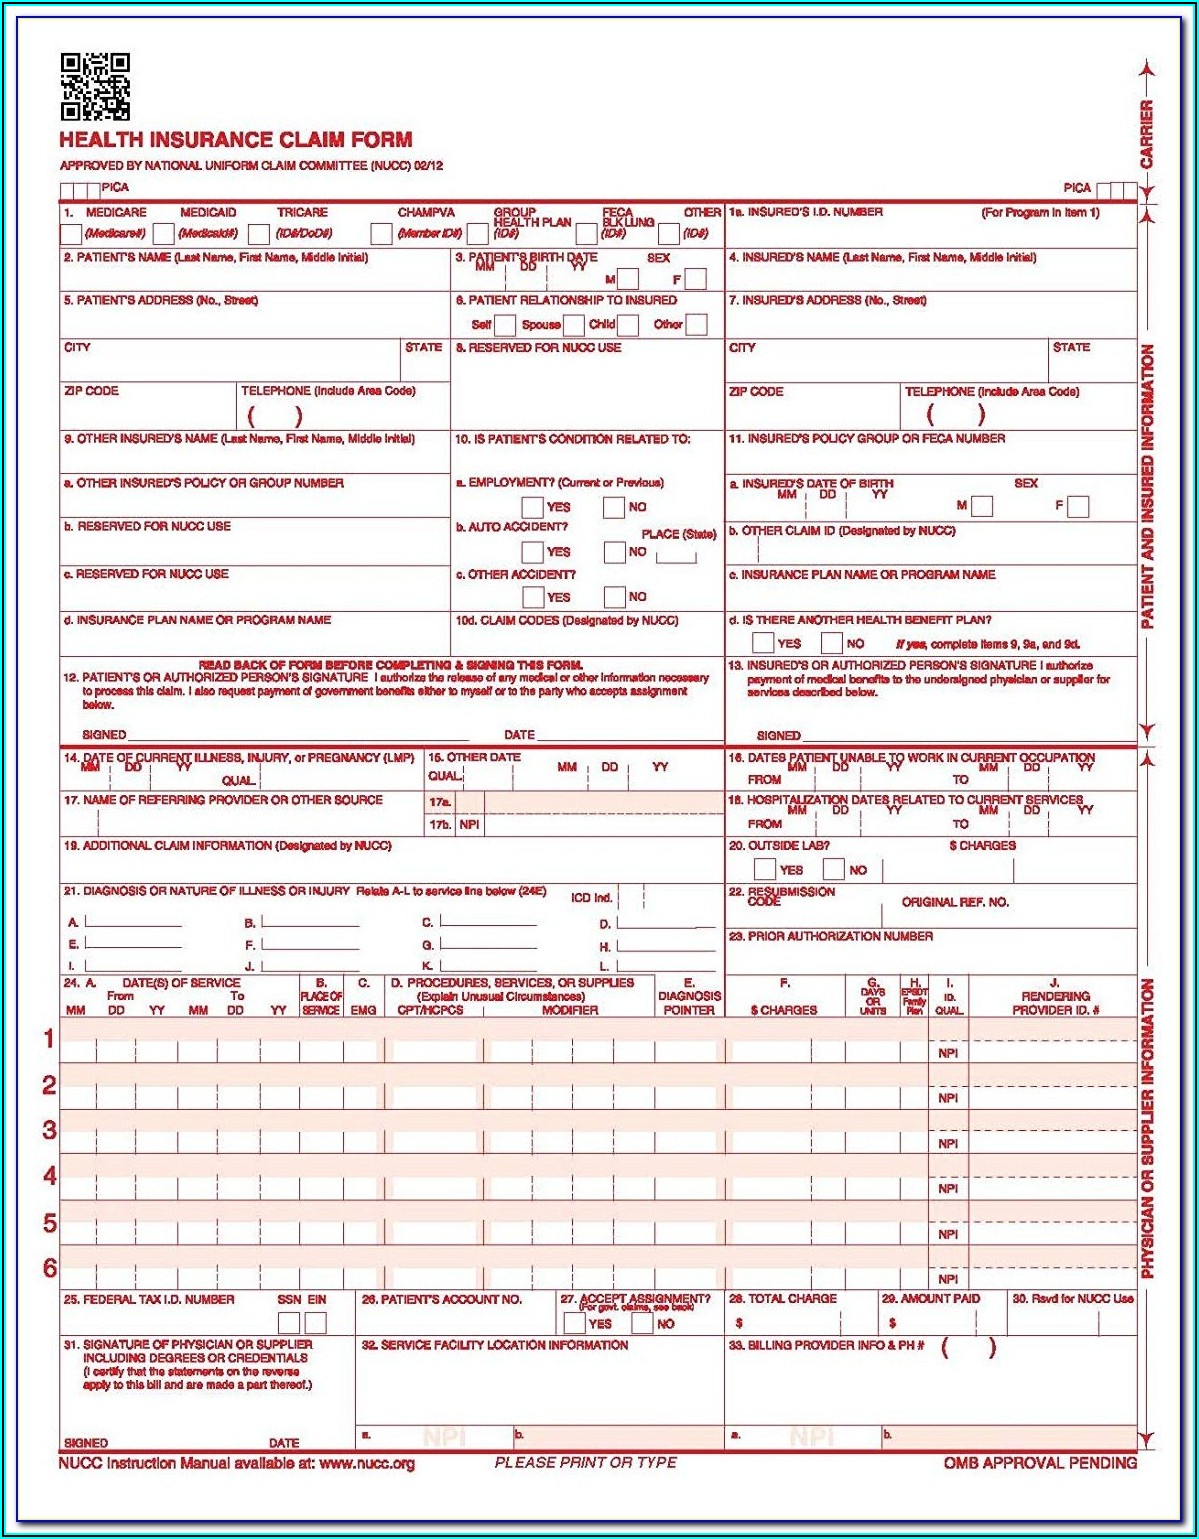 Fillable Hcfa 1500 Form